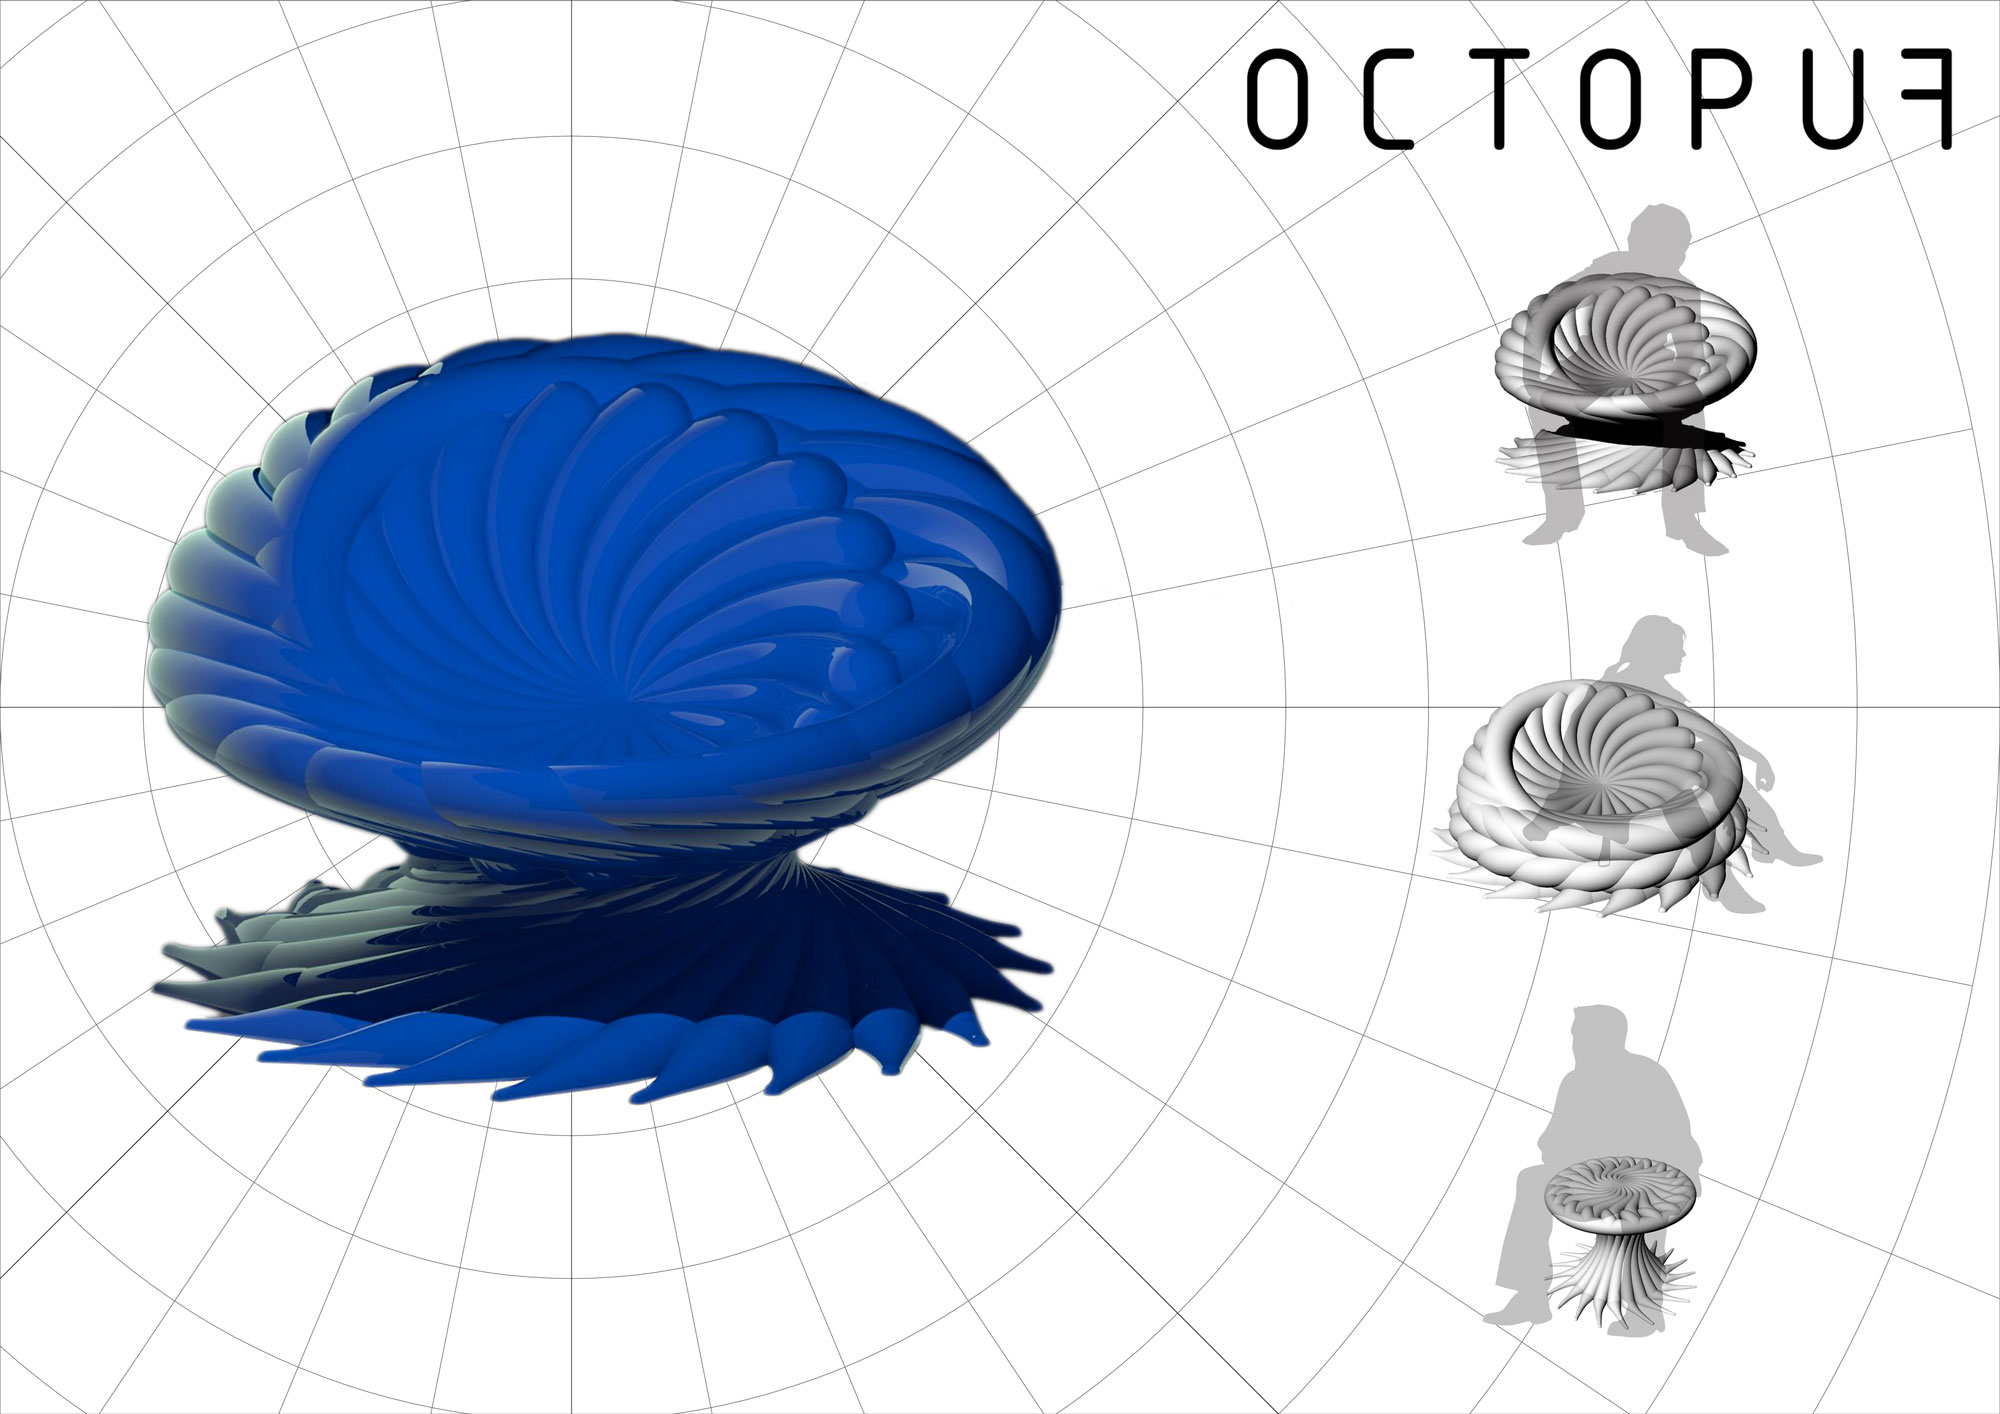 OctopuF parametric chair